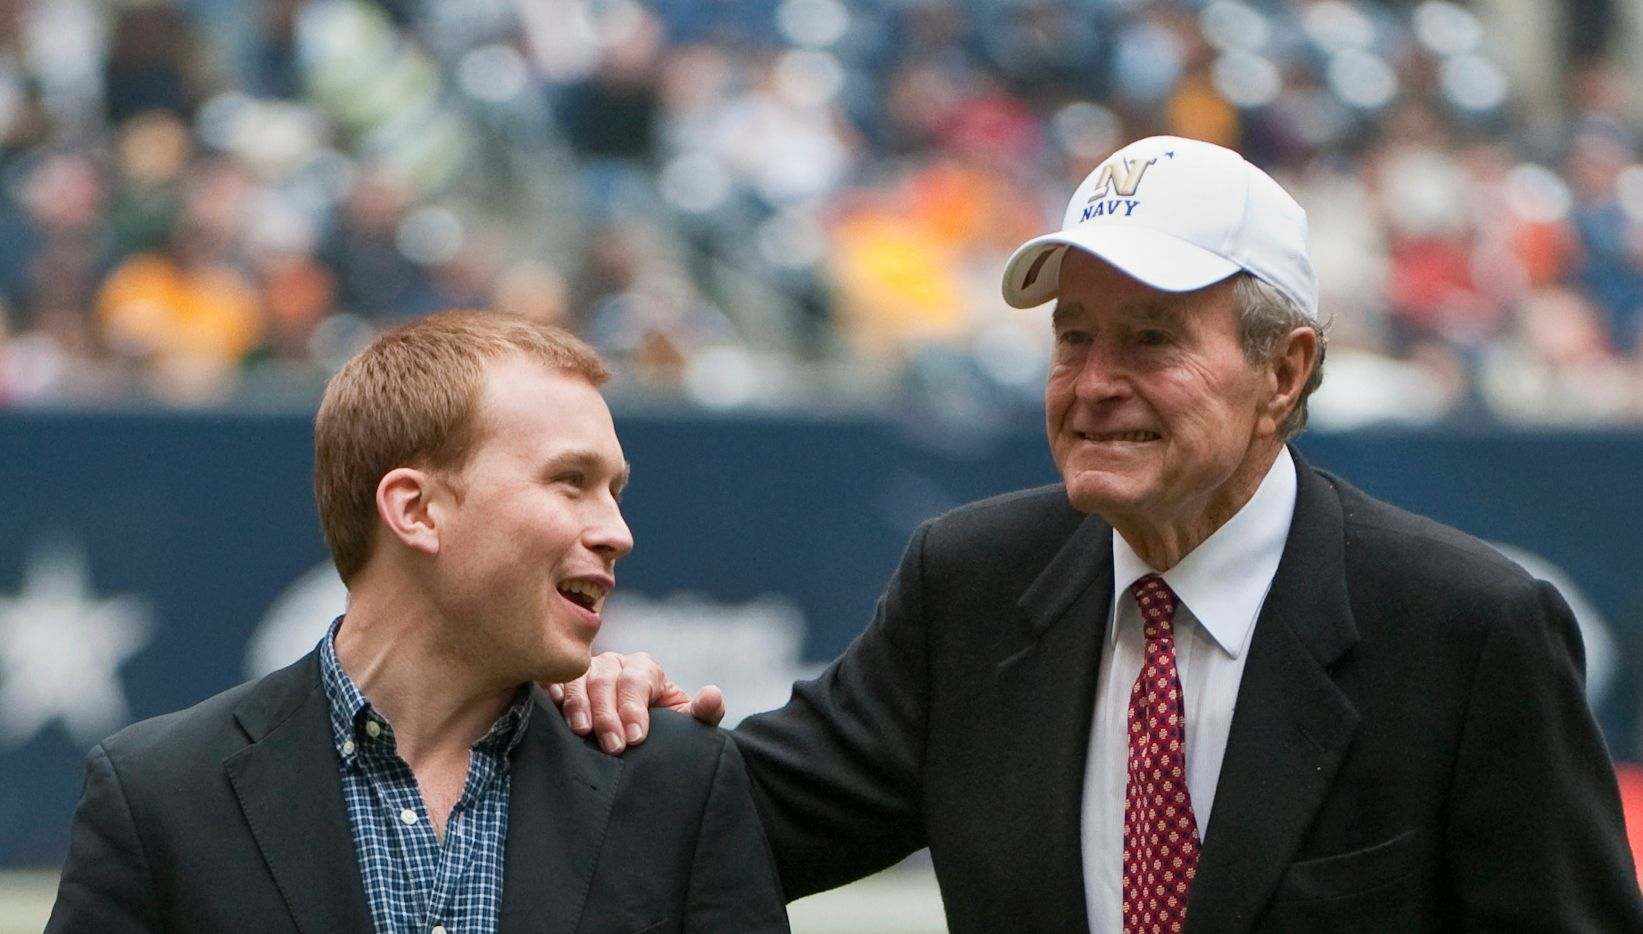 In this Dec. 31, 2009 photo, former President George H. W. Bush leaves the field with the help of Pierce Bush, his grandson, before the Texas Bowl NCAA college football game in Houston. Pierce Bush announced Dec. 9, 2019 that he'll run in the Republican primary for a congressional seat near Houston.